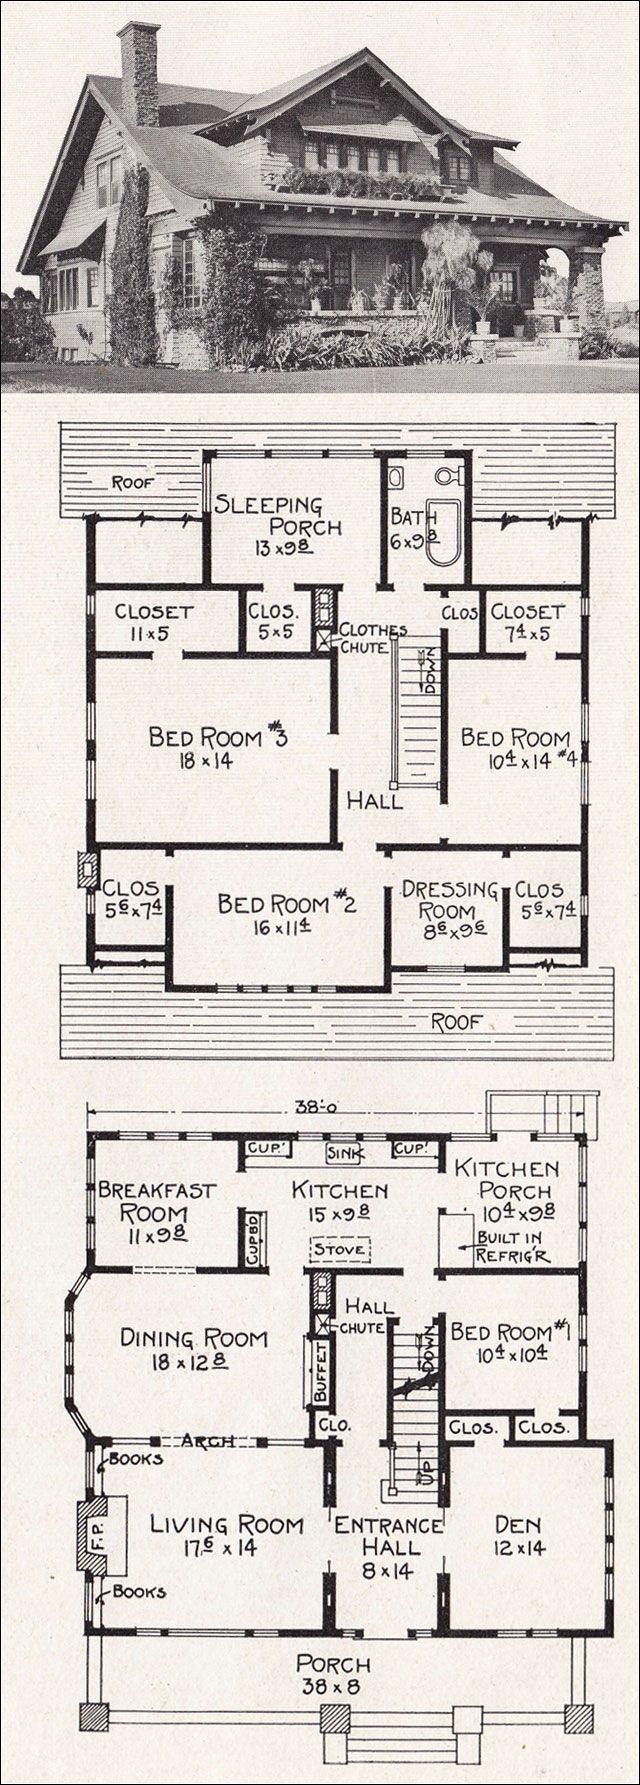 vintage bungalow house plan vintage house plans pinterest On antique house floor plans